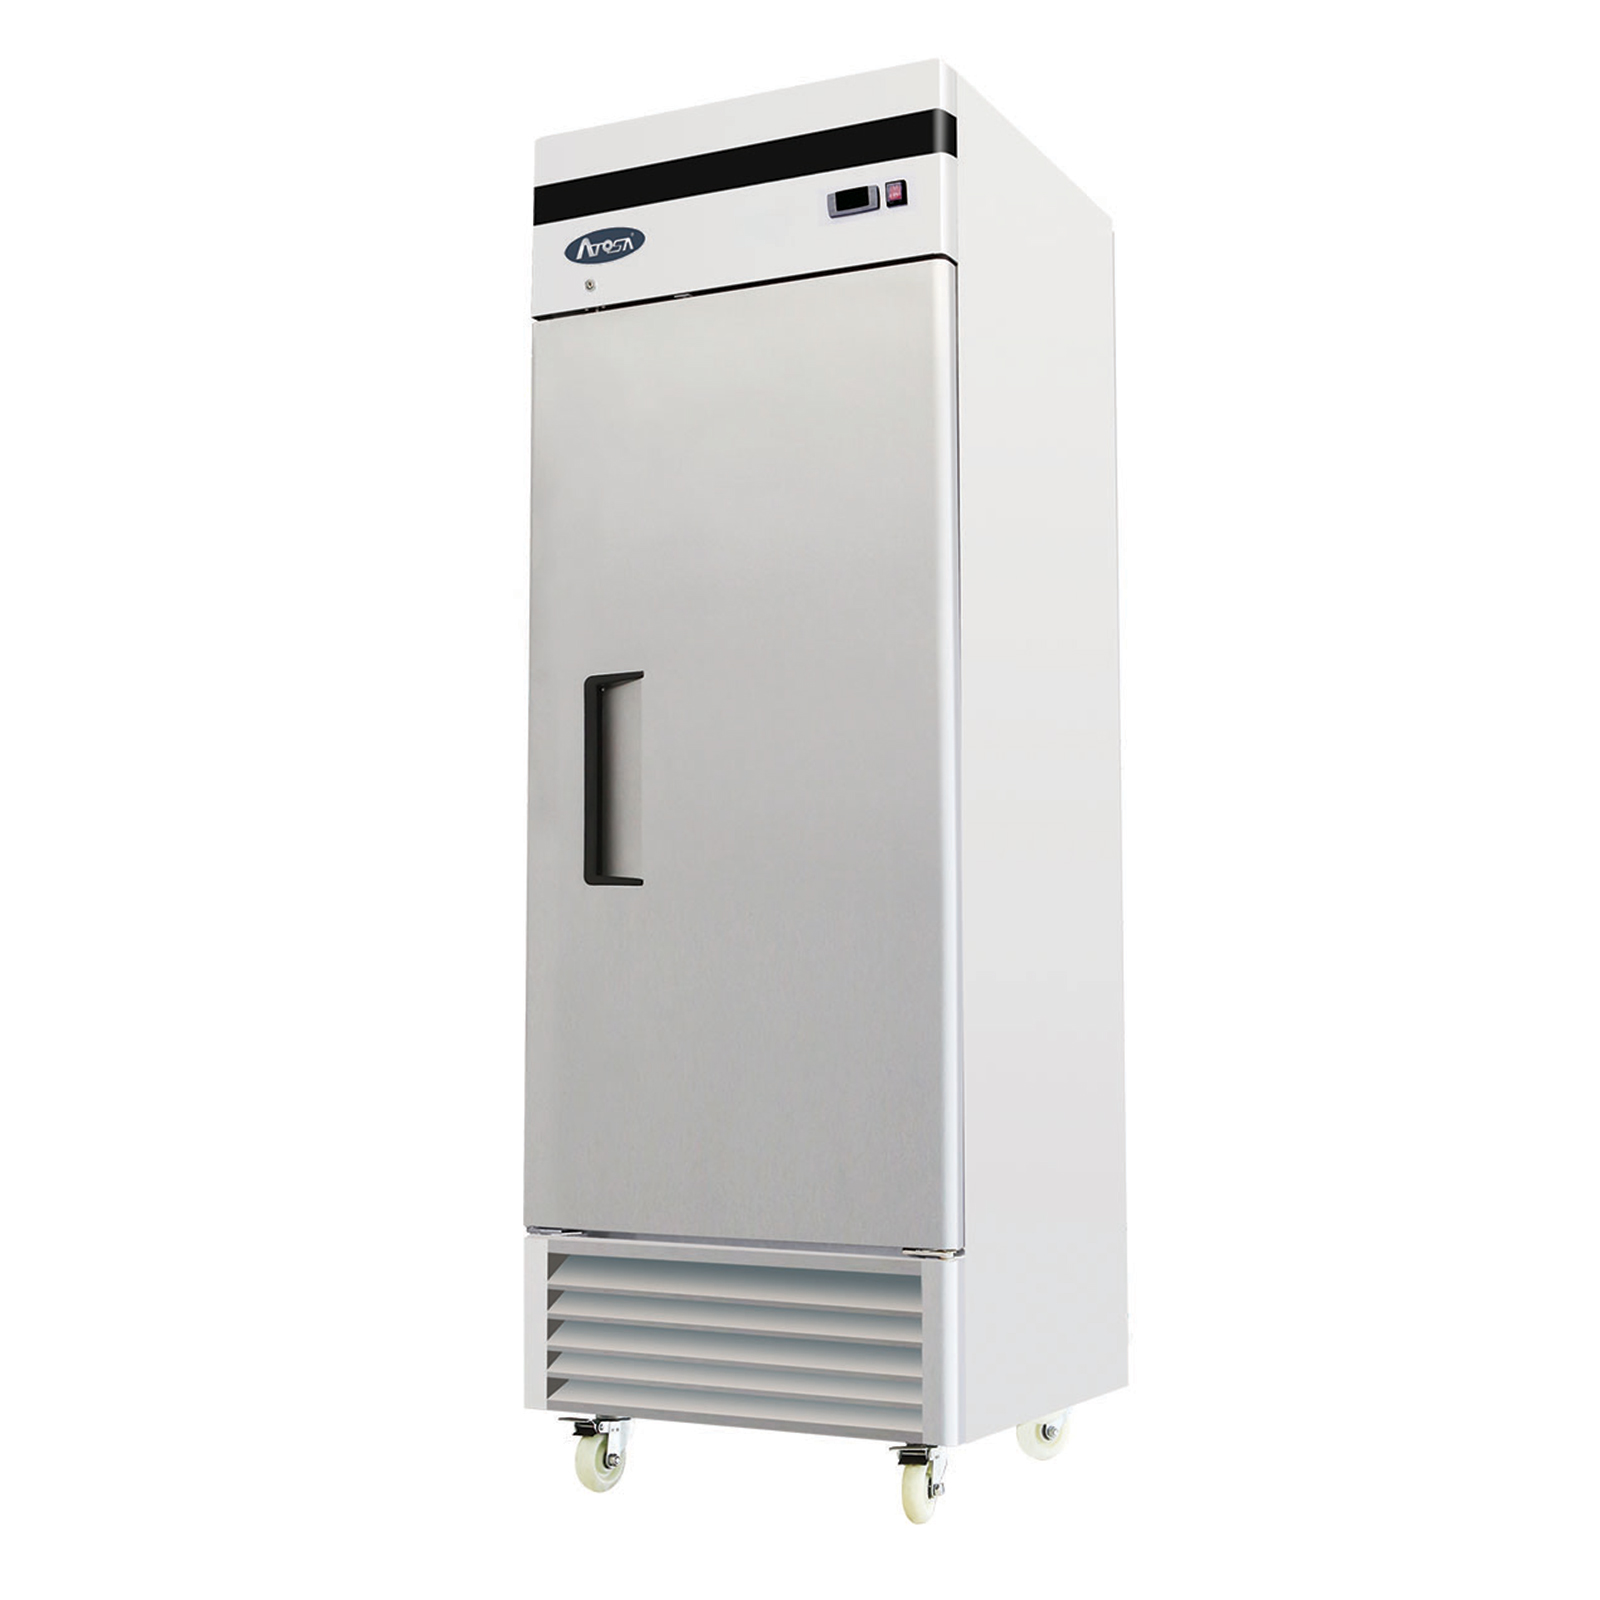 Atosa USA MBF8505GR refrigerator, reach-in